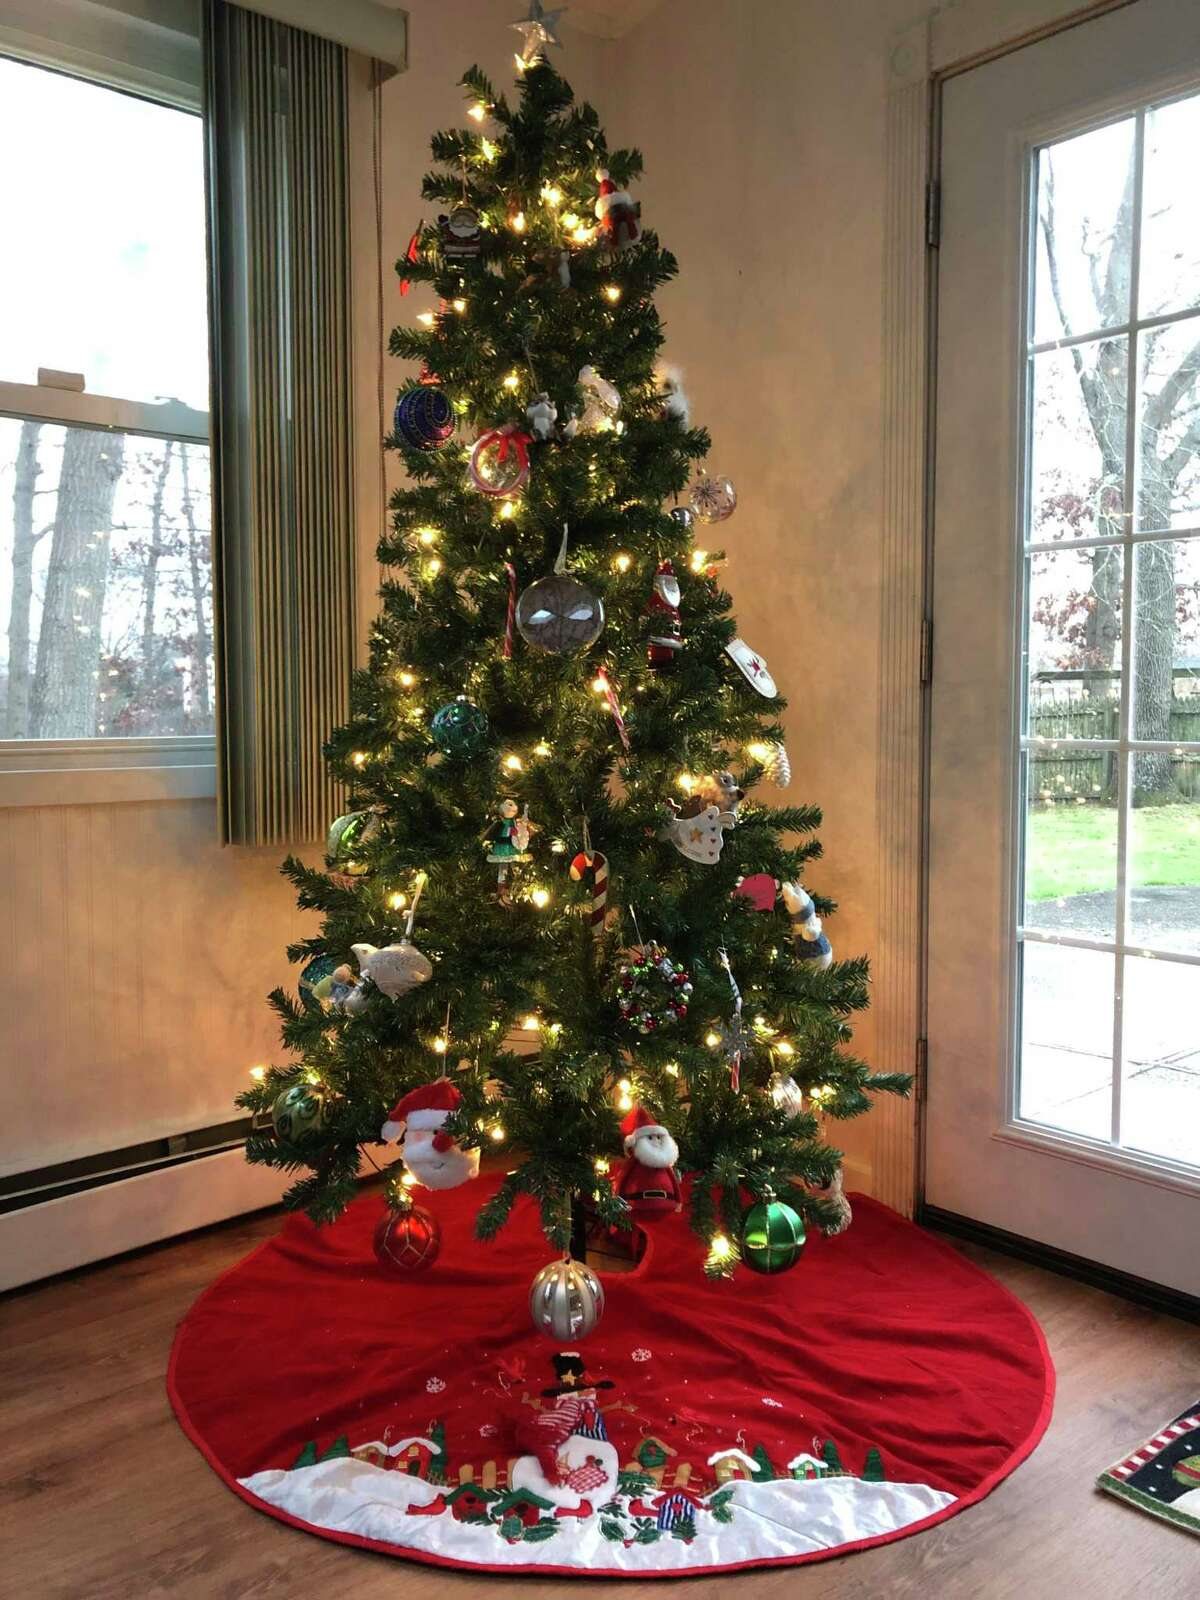 Jerry Zezima reflects on the events of 2020 in his Christmas letter.